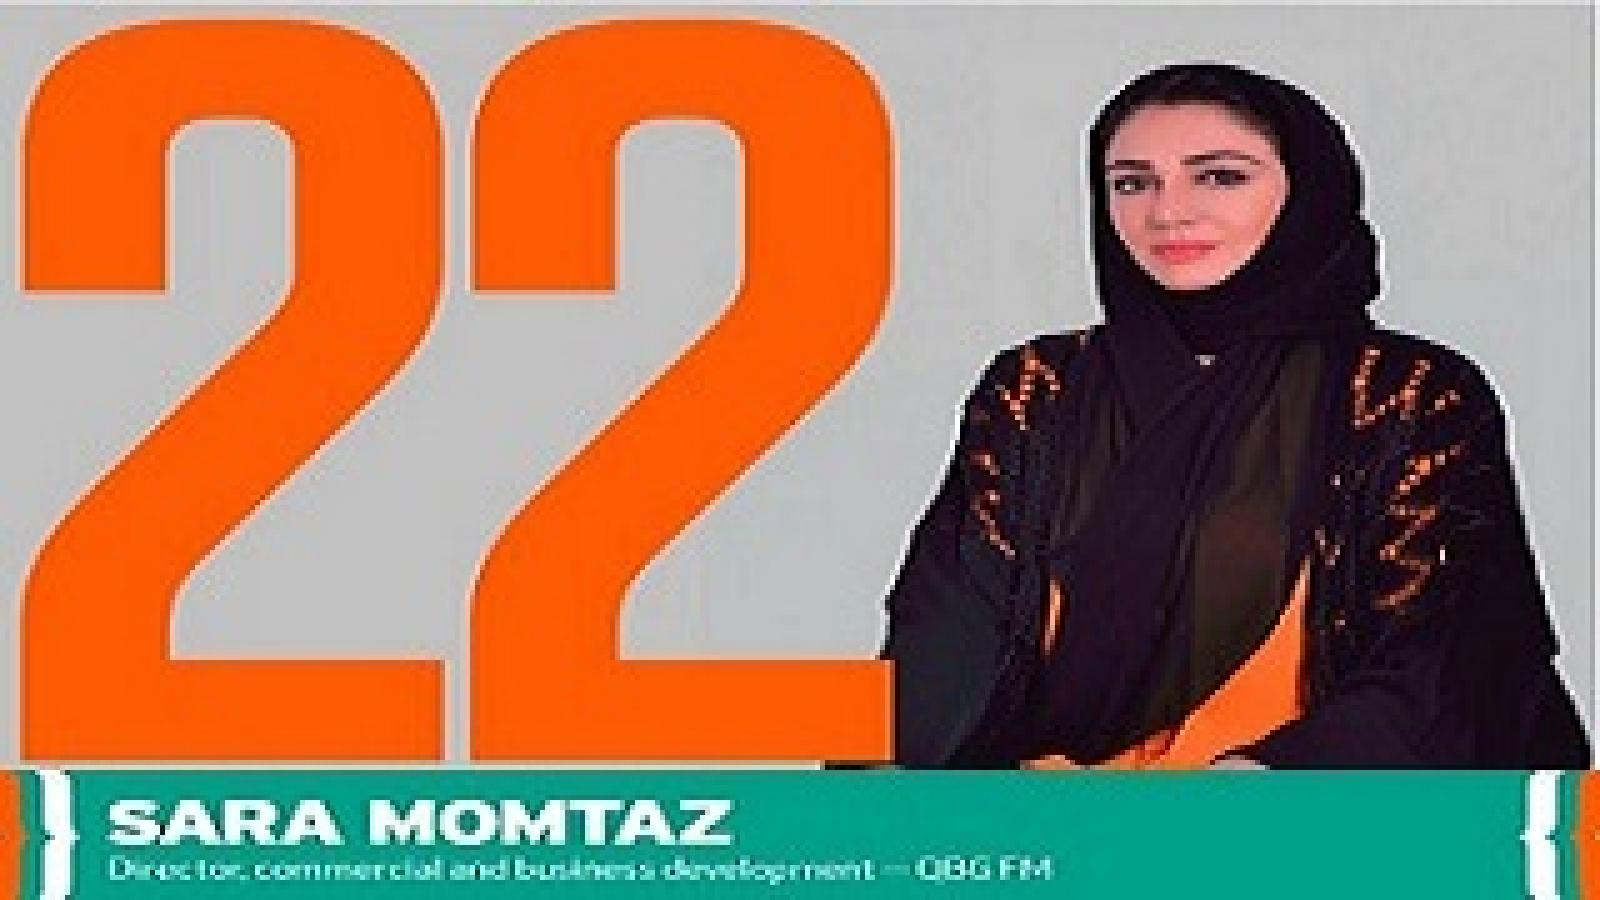 QBG's Commercial & Business Development Director, Sara Momtaz, among the 50 most influential FM Professionals in the Middle East